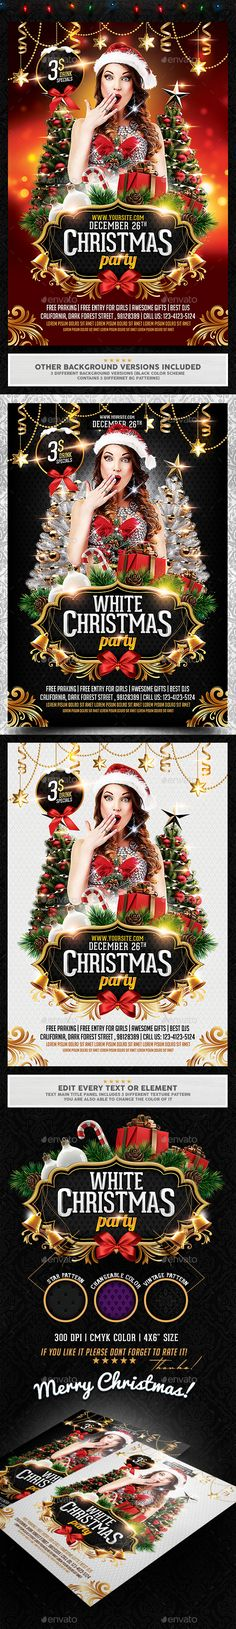 Christmas Flyer Template  Christmas Flyer Flyer Template And